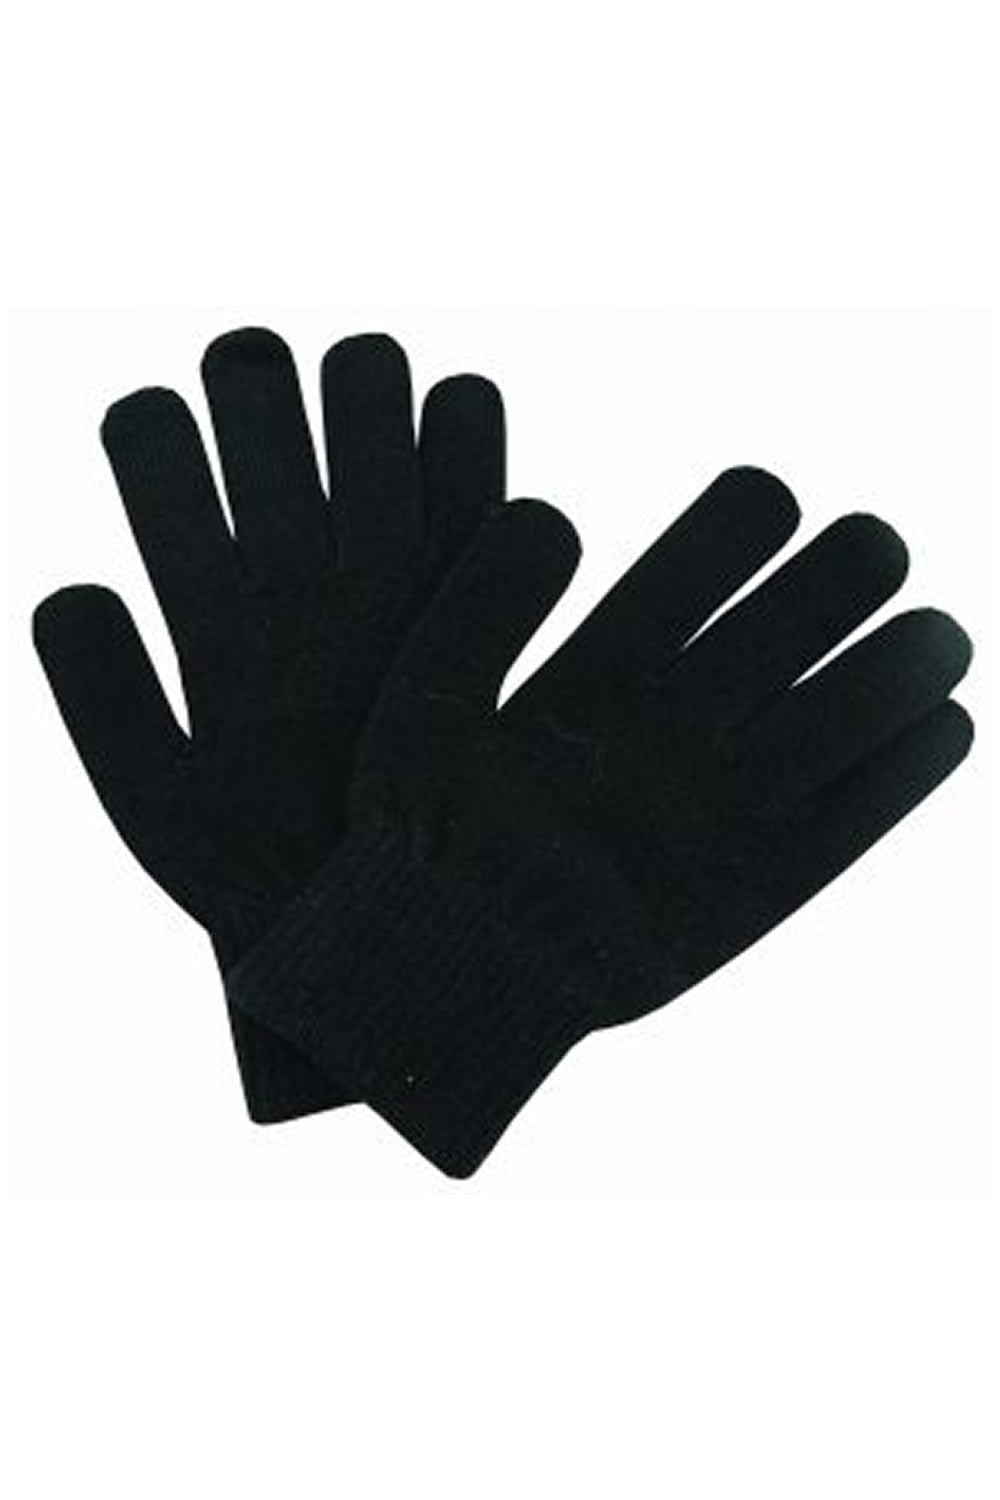 Avenel Acrylic Stretch Glove